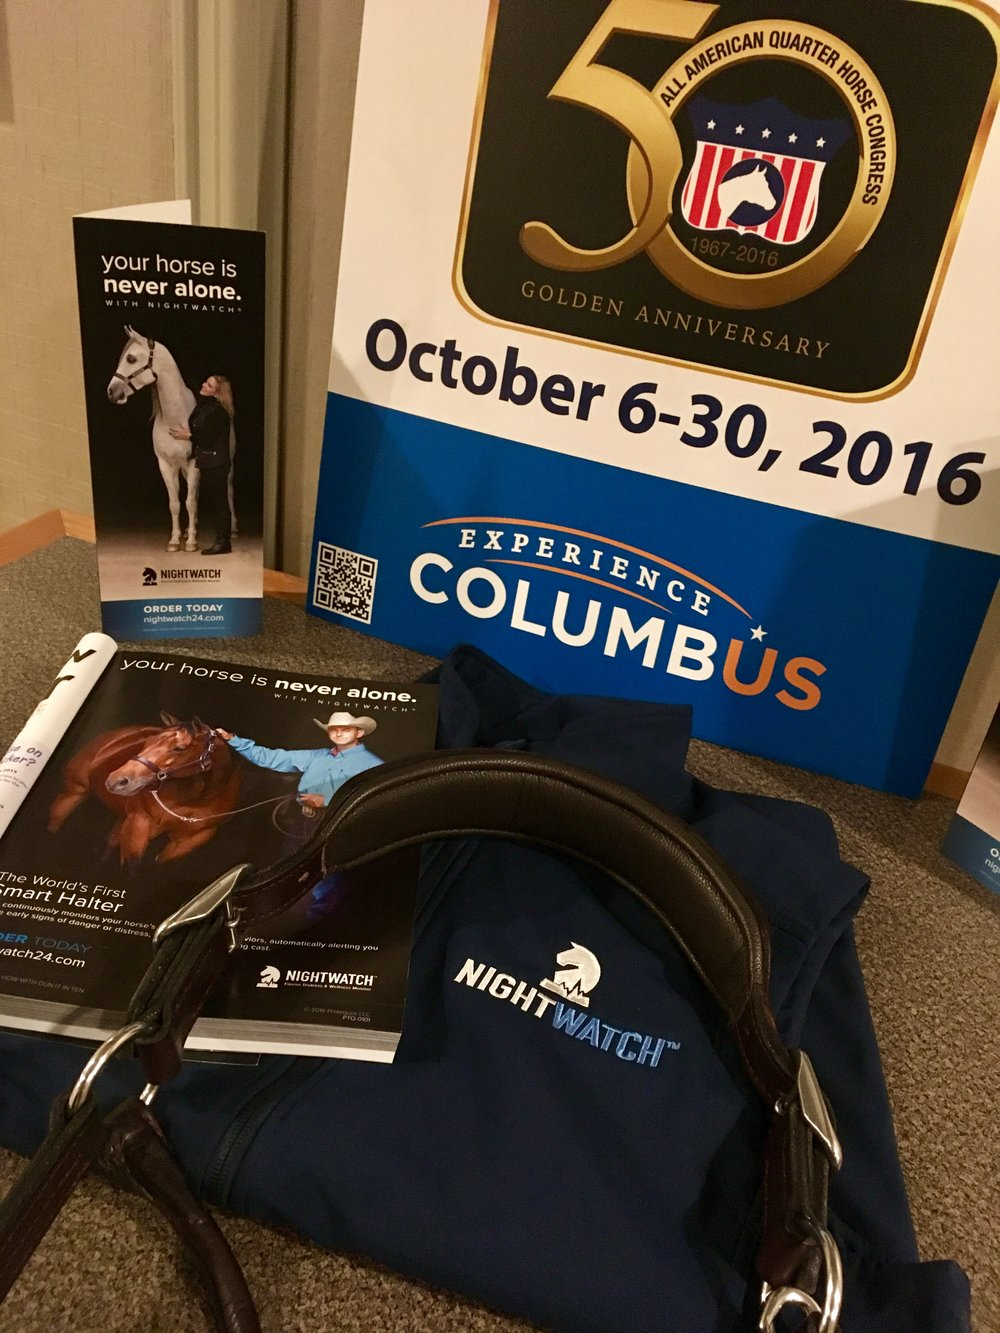 NIGHTWATCH® among the 20,000+ entries in the 50th All American Quarter Horse Congress in Columbus, Ohio.